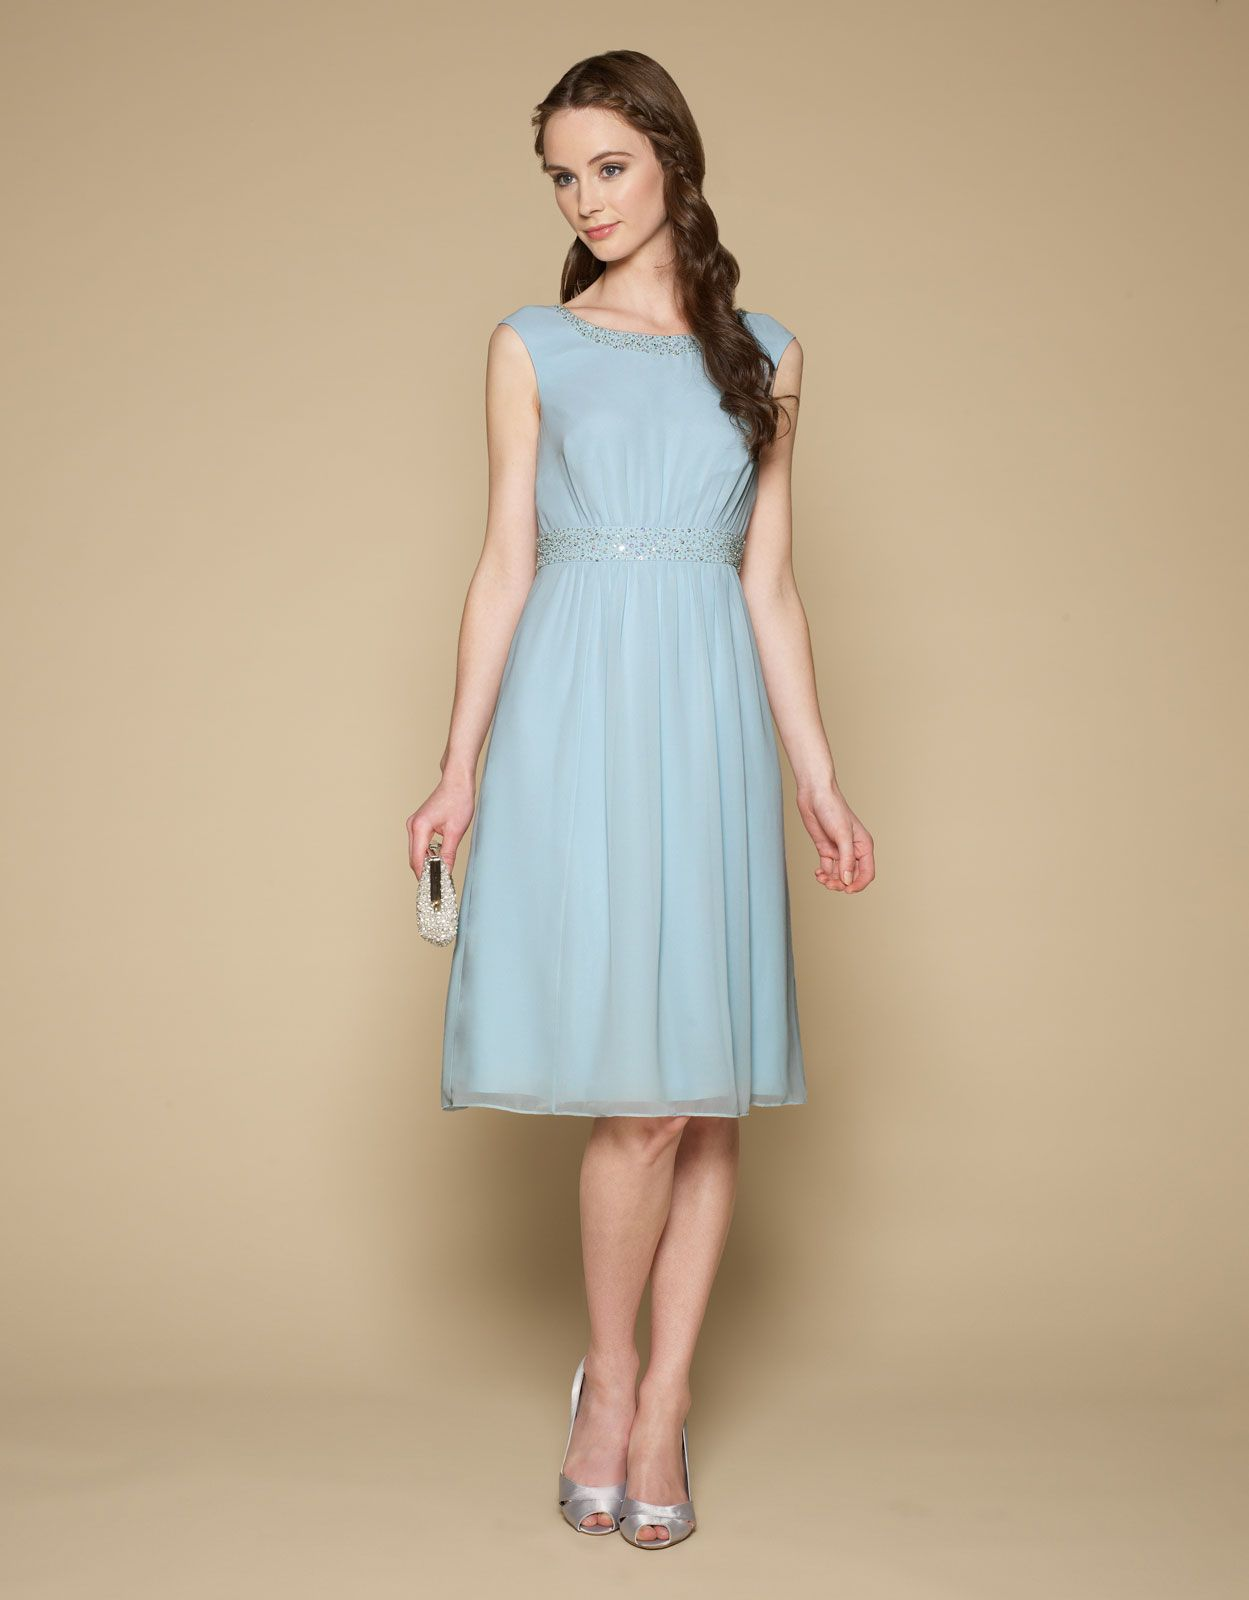 Spring wedding outfits mother of the bride dresses motb suits